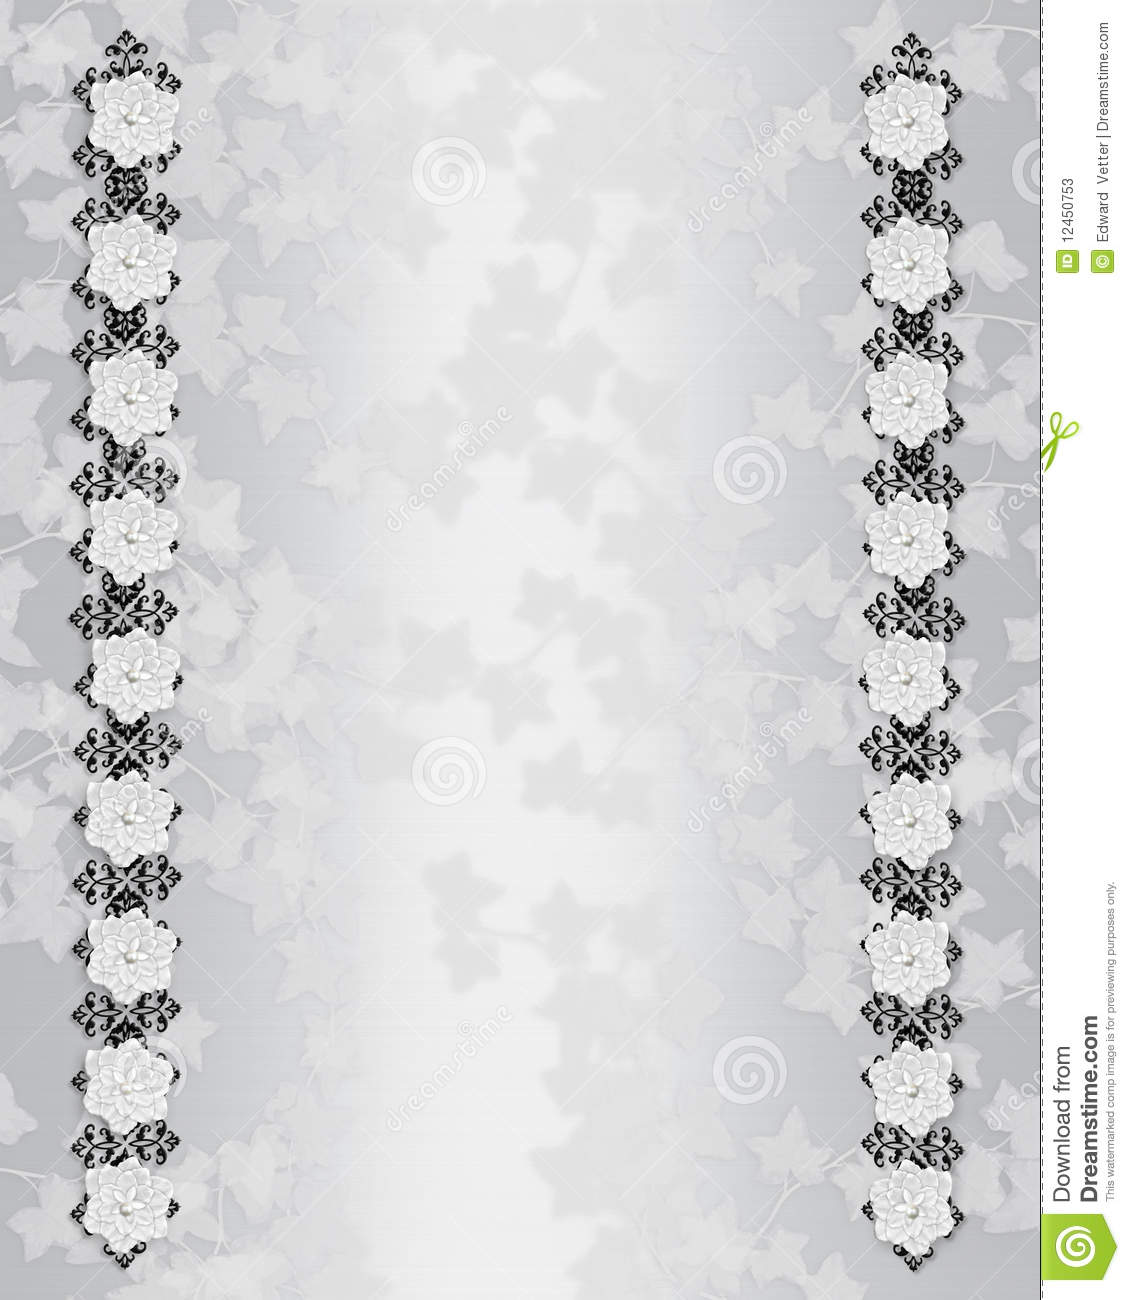 Decorated Background Designs Elegant White